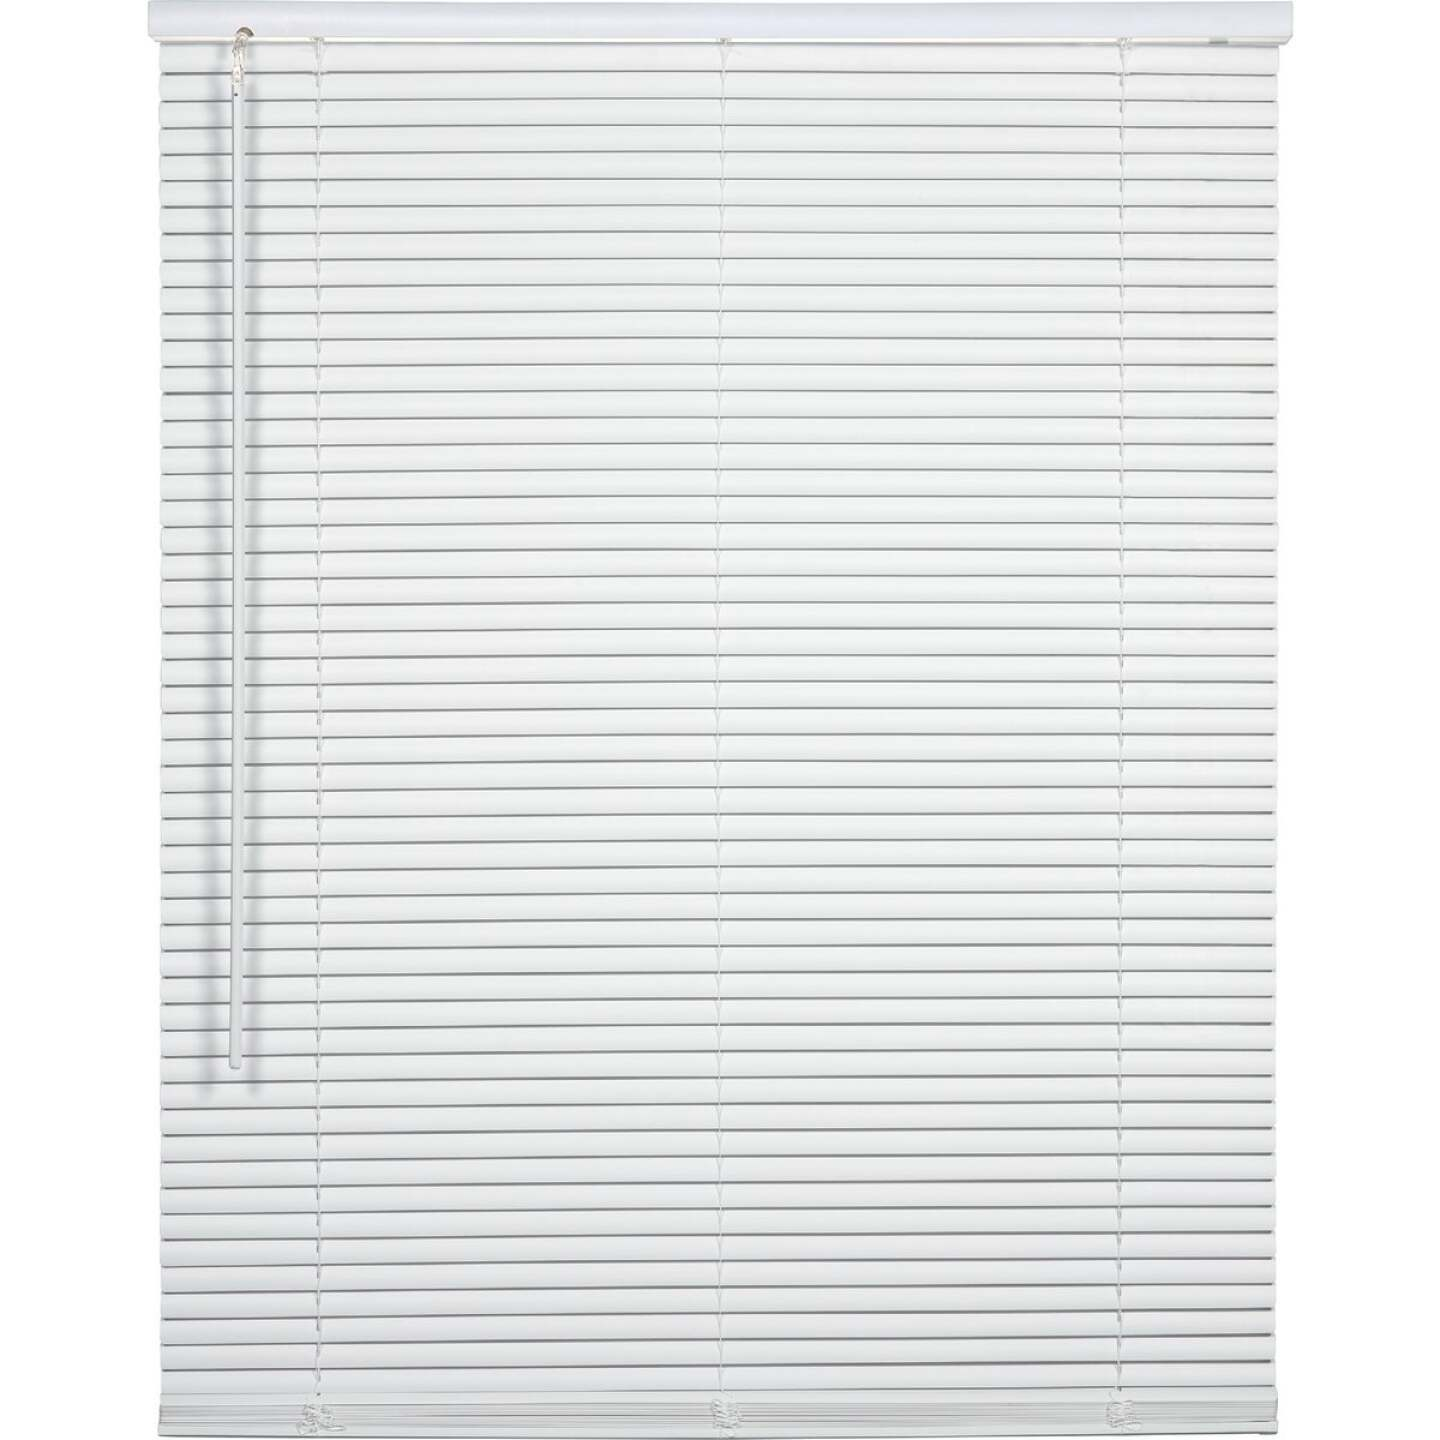 Home Impressions 30 In. x 72 In. x 1 In. White Vinyl Light Filtering Cordless Mini Blind Image 1